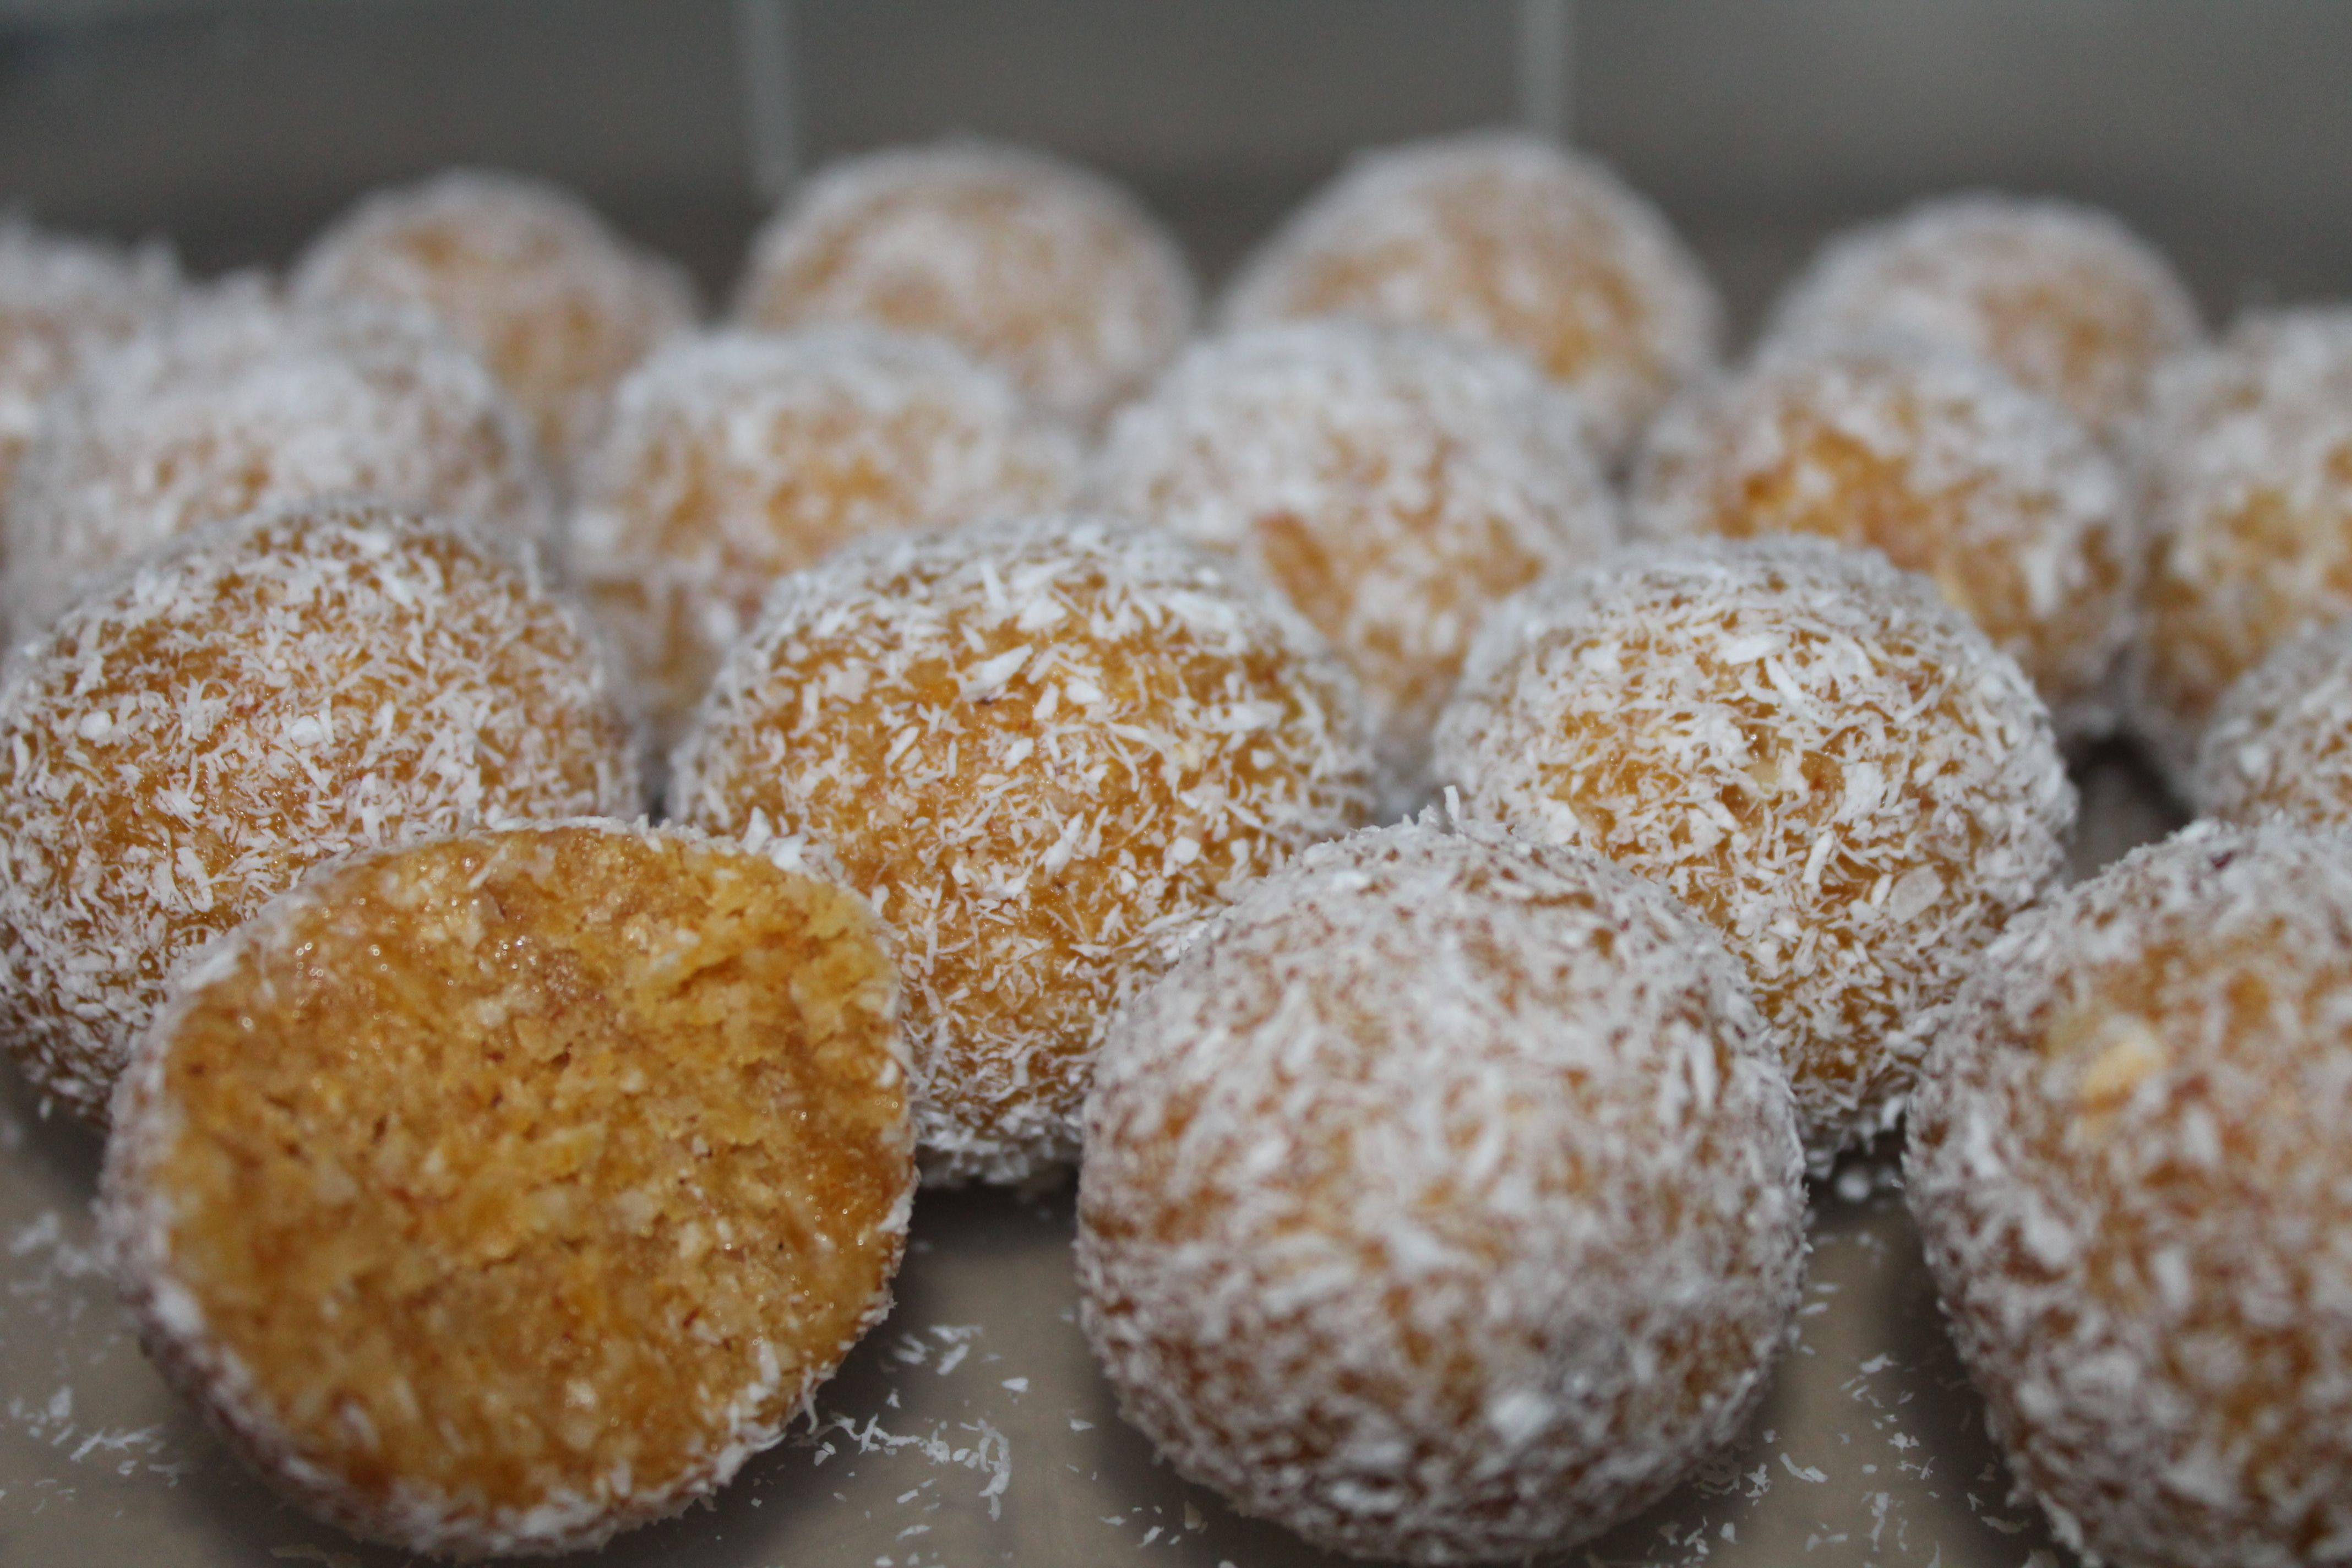 Apricot and Almond bliss balls- For those who don't know, bliss balls are a delicious healthy snack I promise the whole family will love! They are so easy to make and store, plus they are sugar free, gluten free and dairy free if you make them with coconut oil instead of butter!